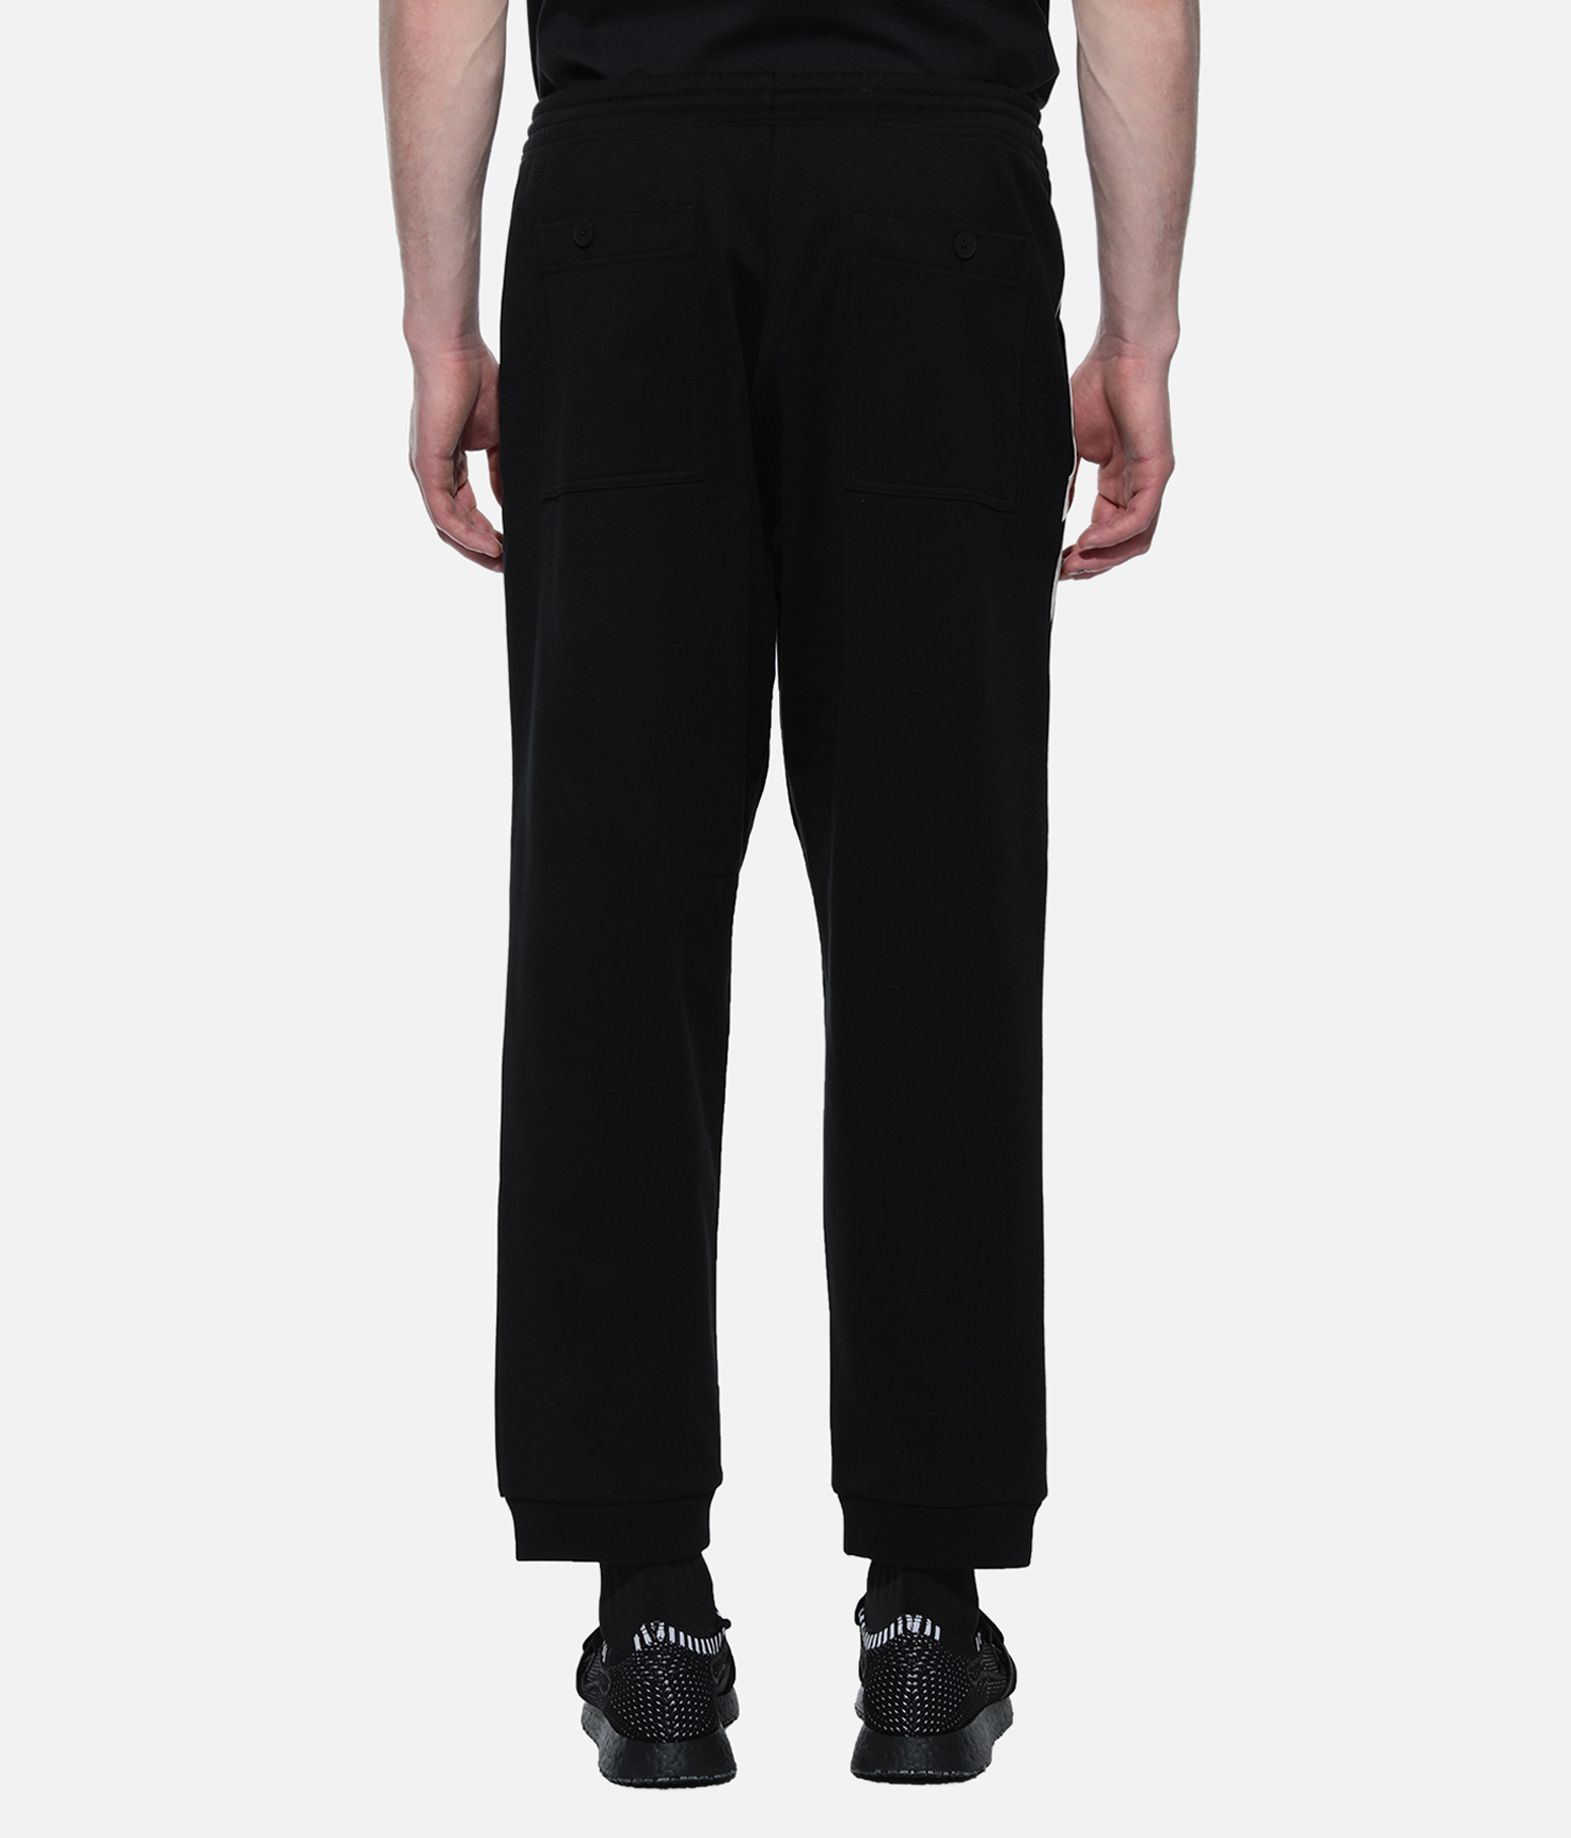 Y-3 Y-3 3-Stripes Cuff Pants Casual pants Man d